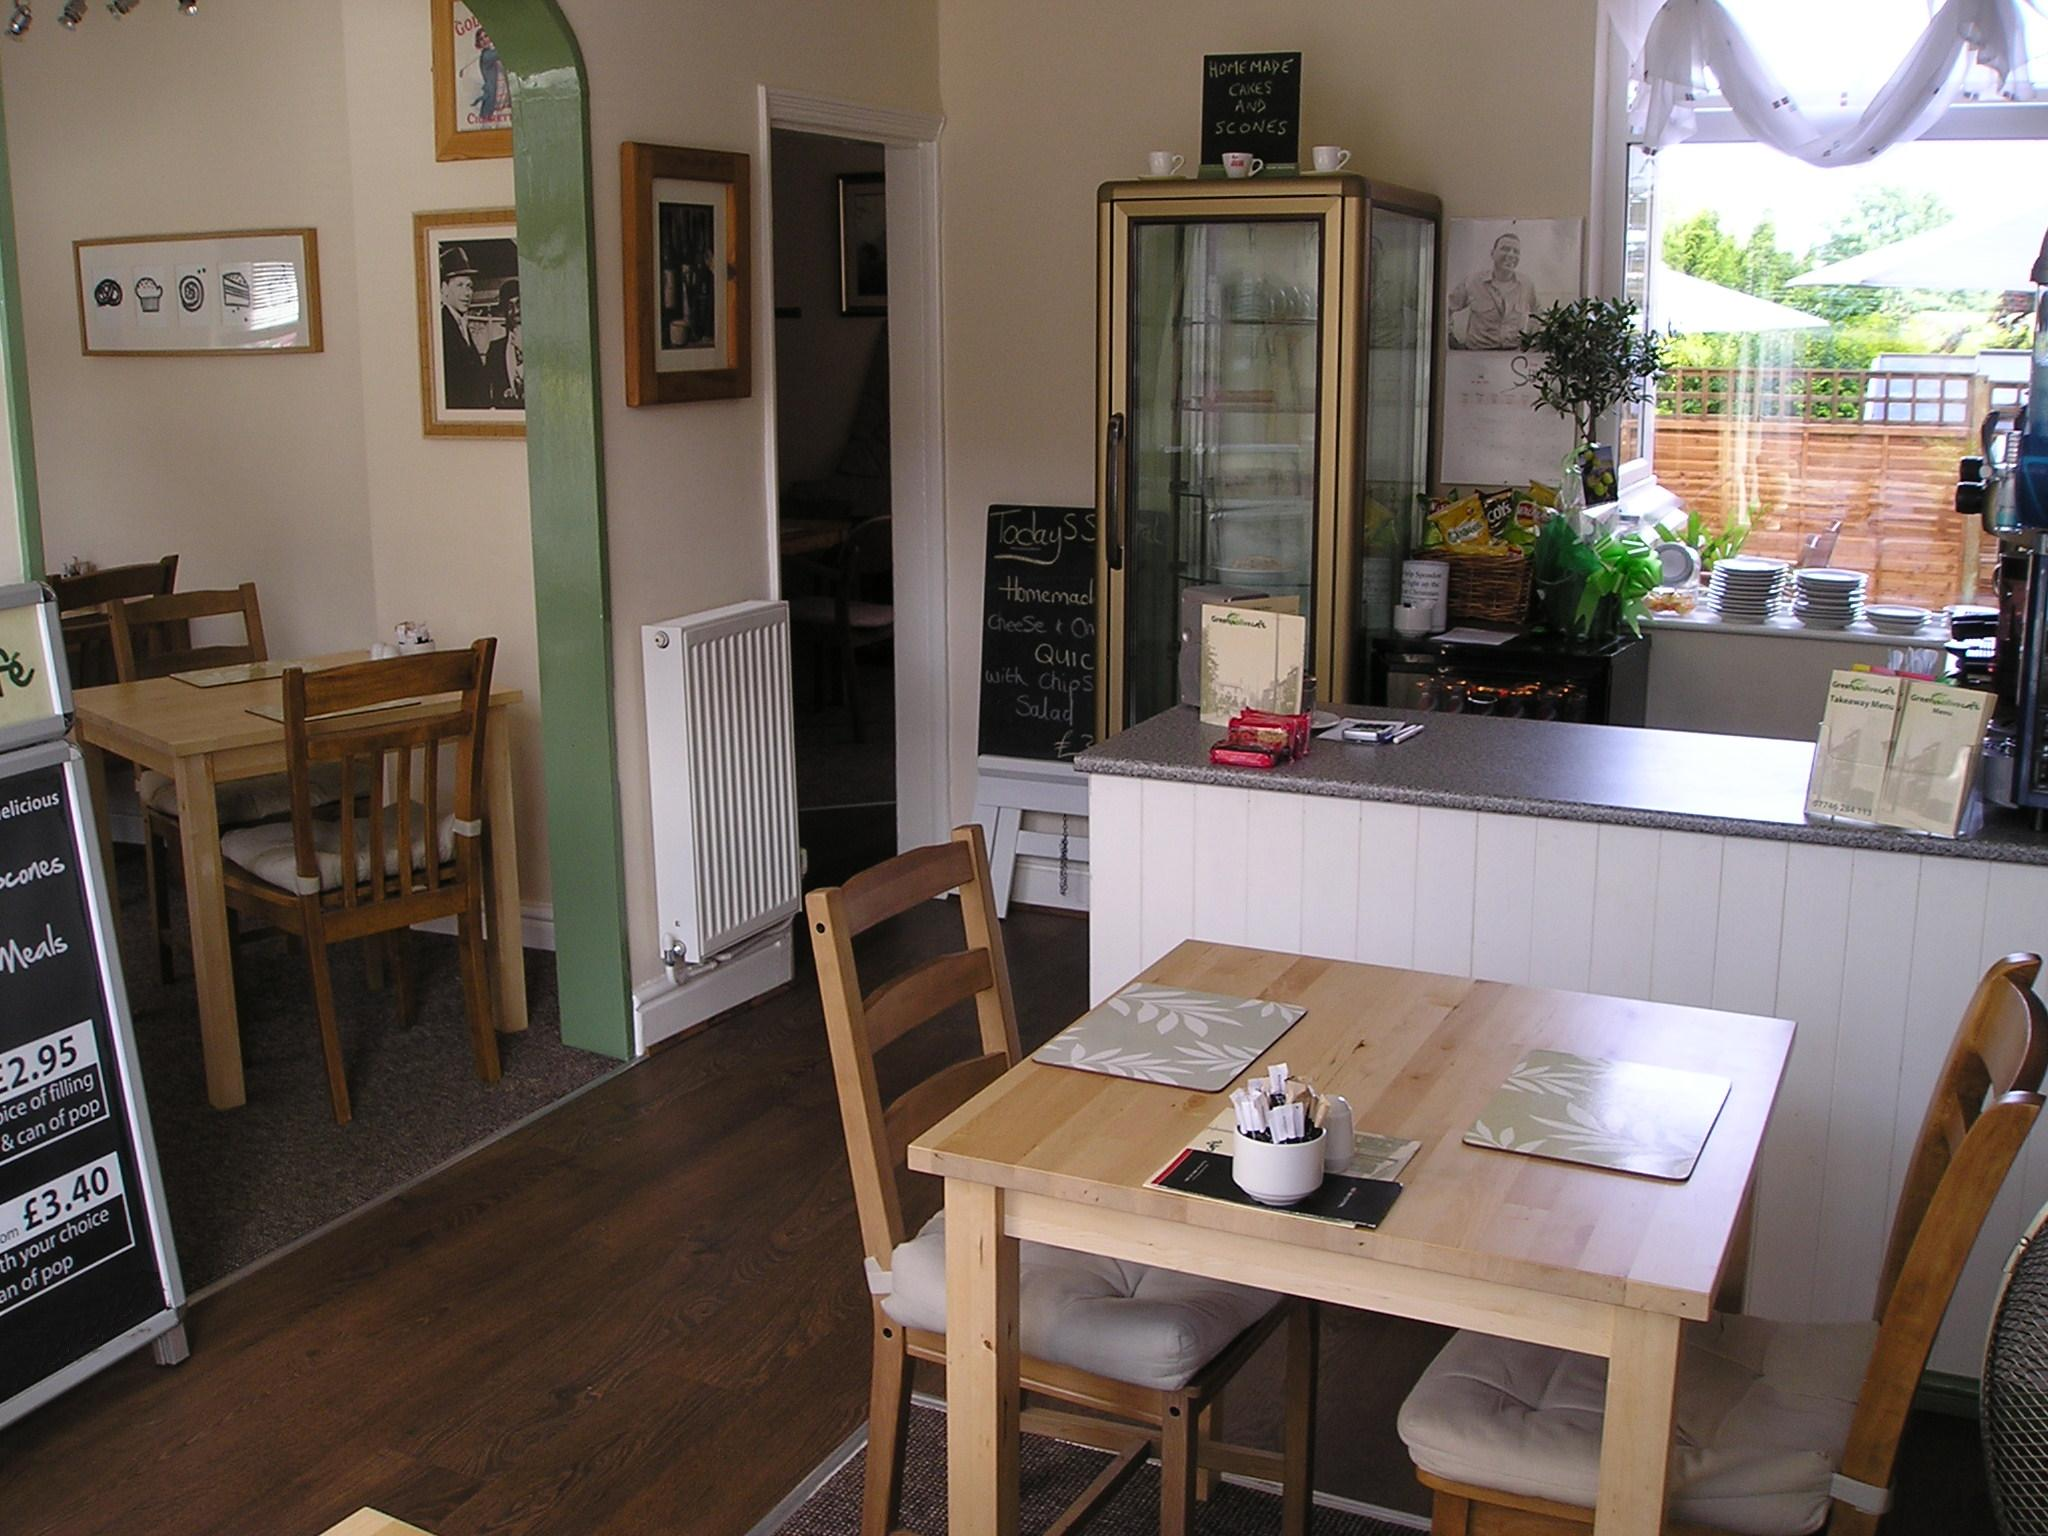 Green Olive Cafe, Derby